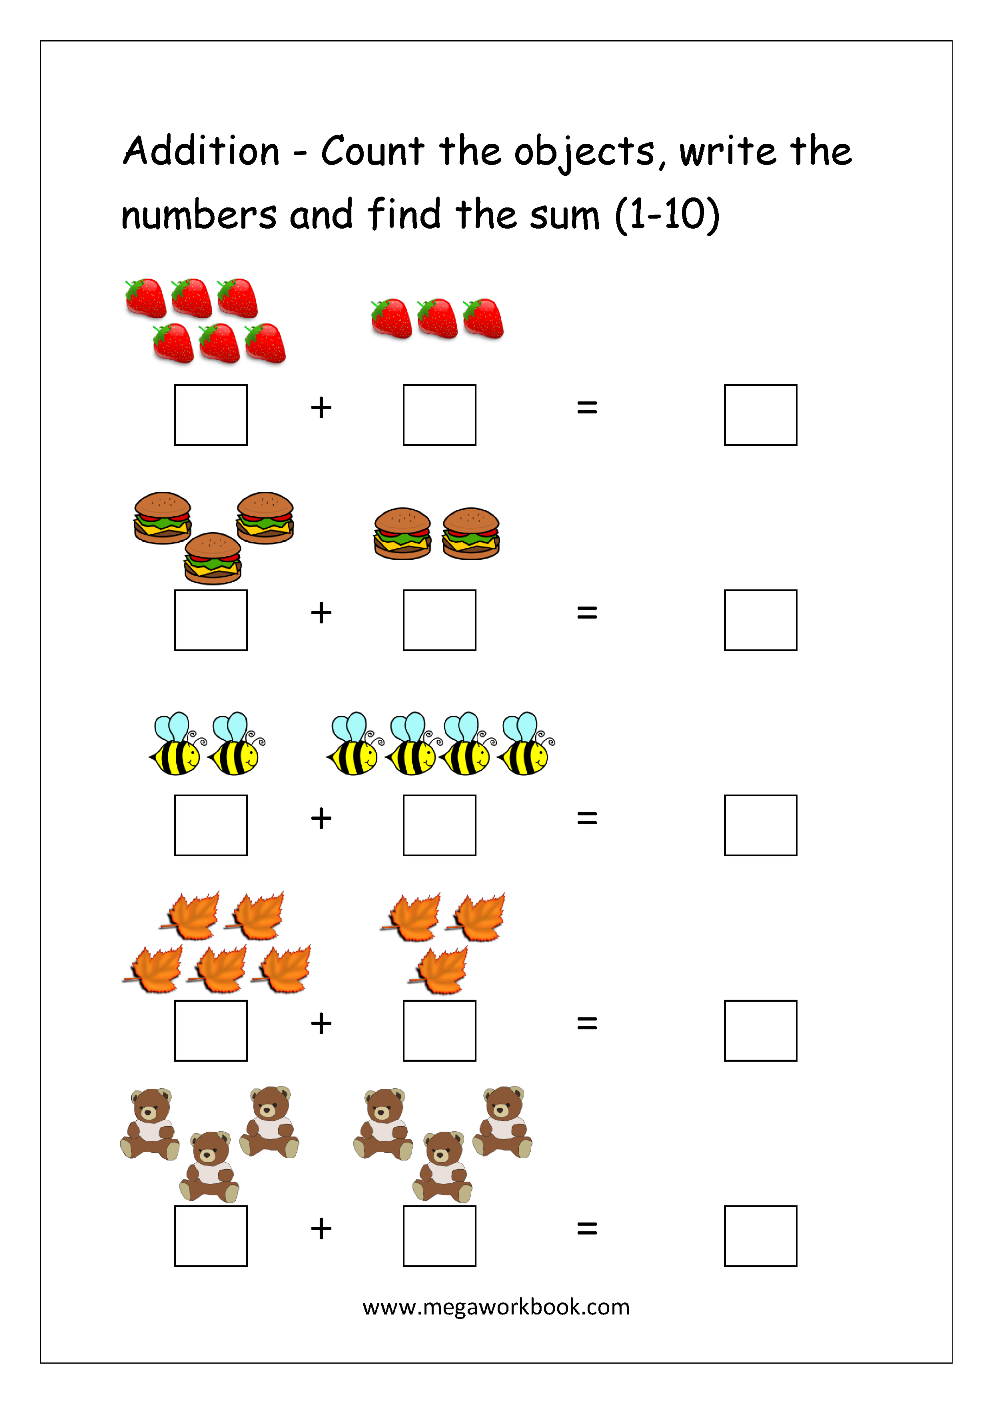 Grade 1 Addition Worksheets - free &amp- printable | K5 Learning